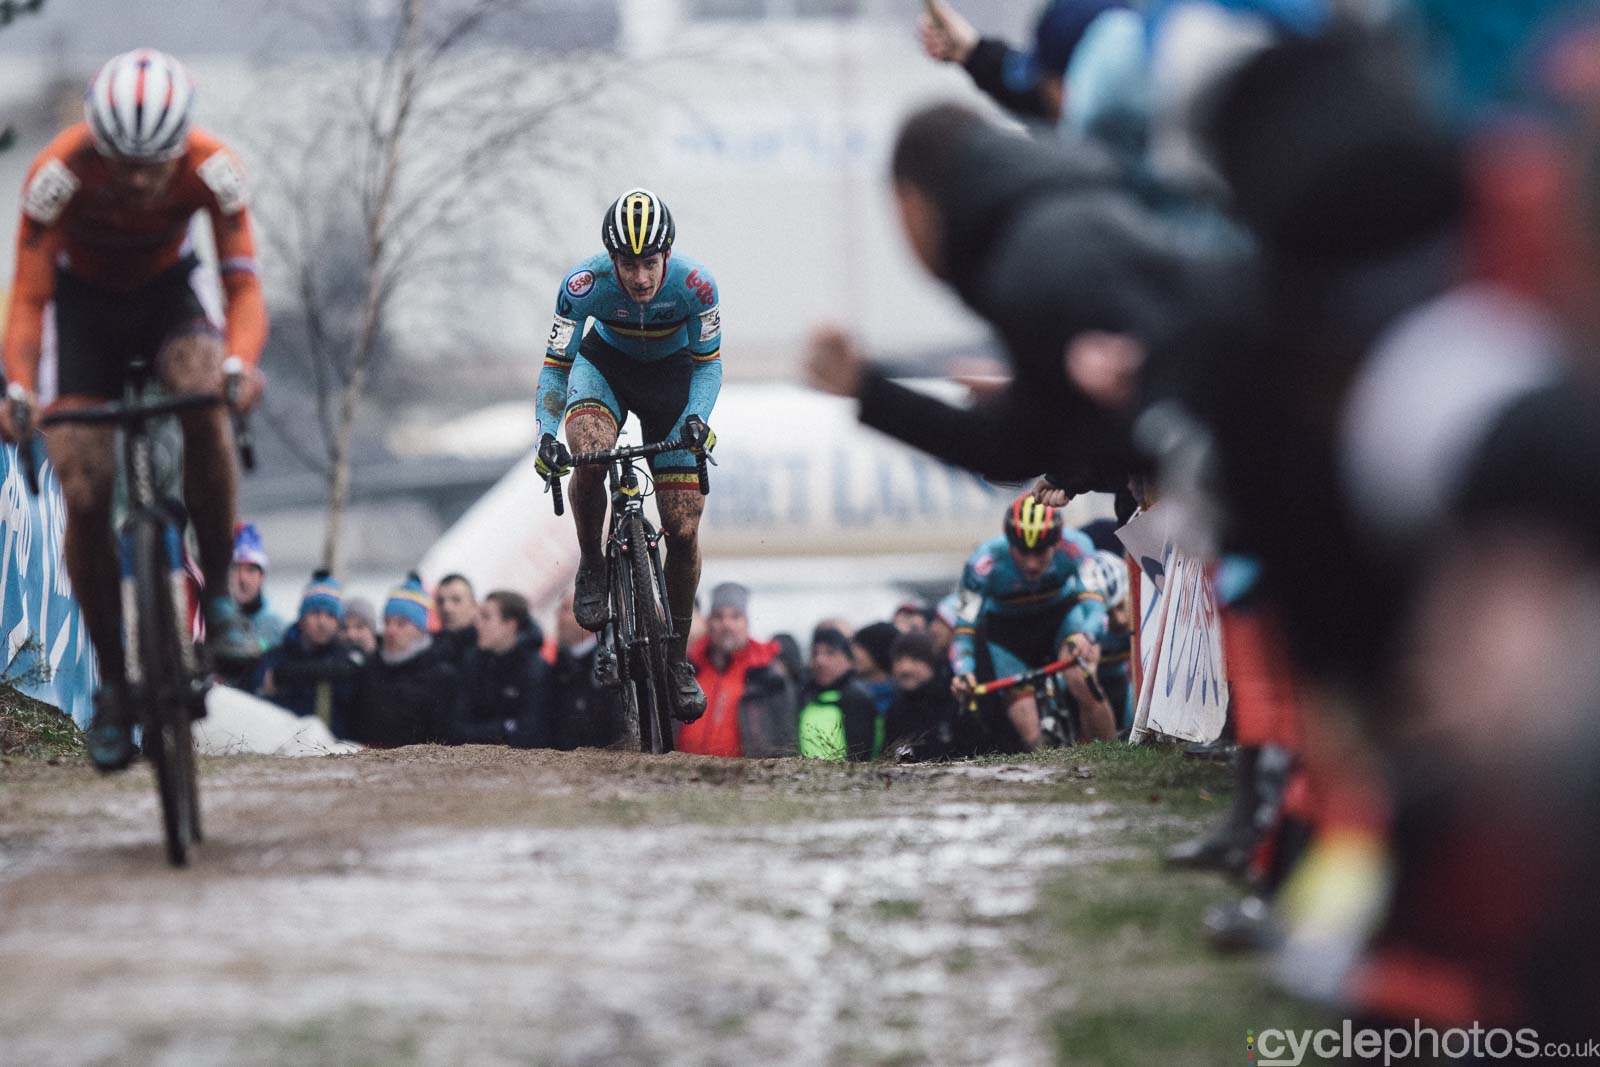 2016-cyclephotos-cyclocross-world-championships-zolder-111755-daan-soote